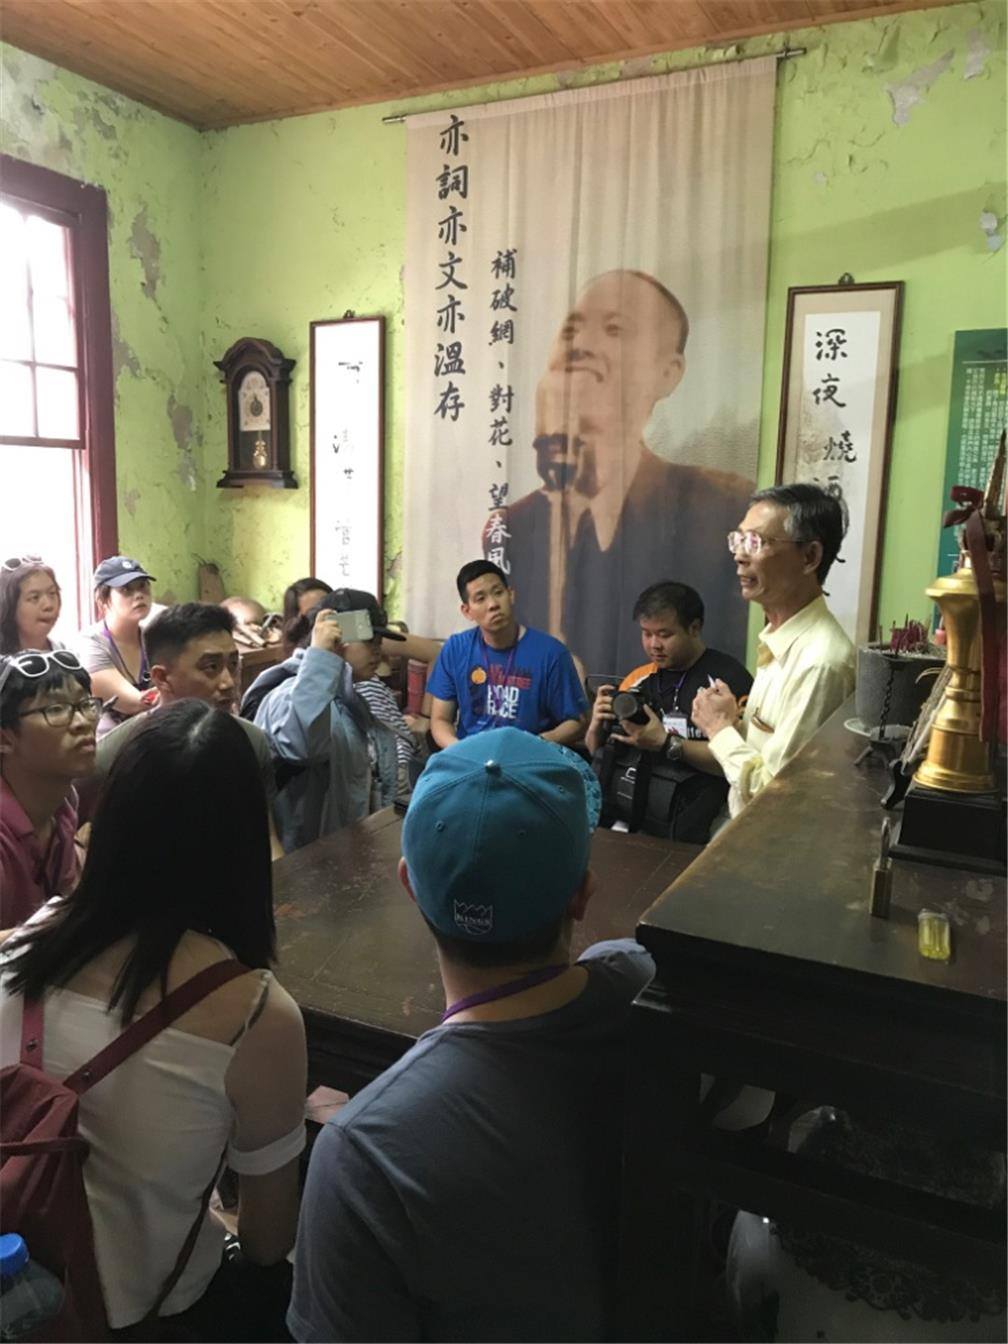 Taiwanese American Professionals delegation visited the house of a famous song writer Lee Lim-Chiu in 1930s